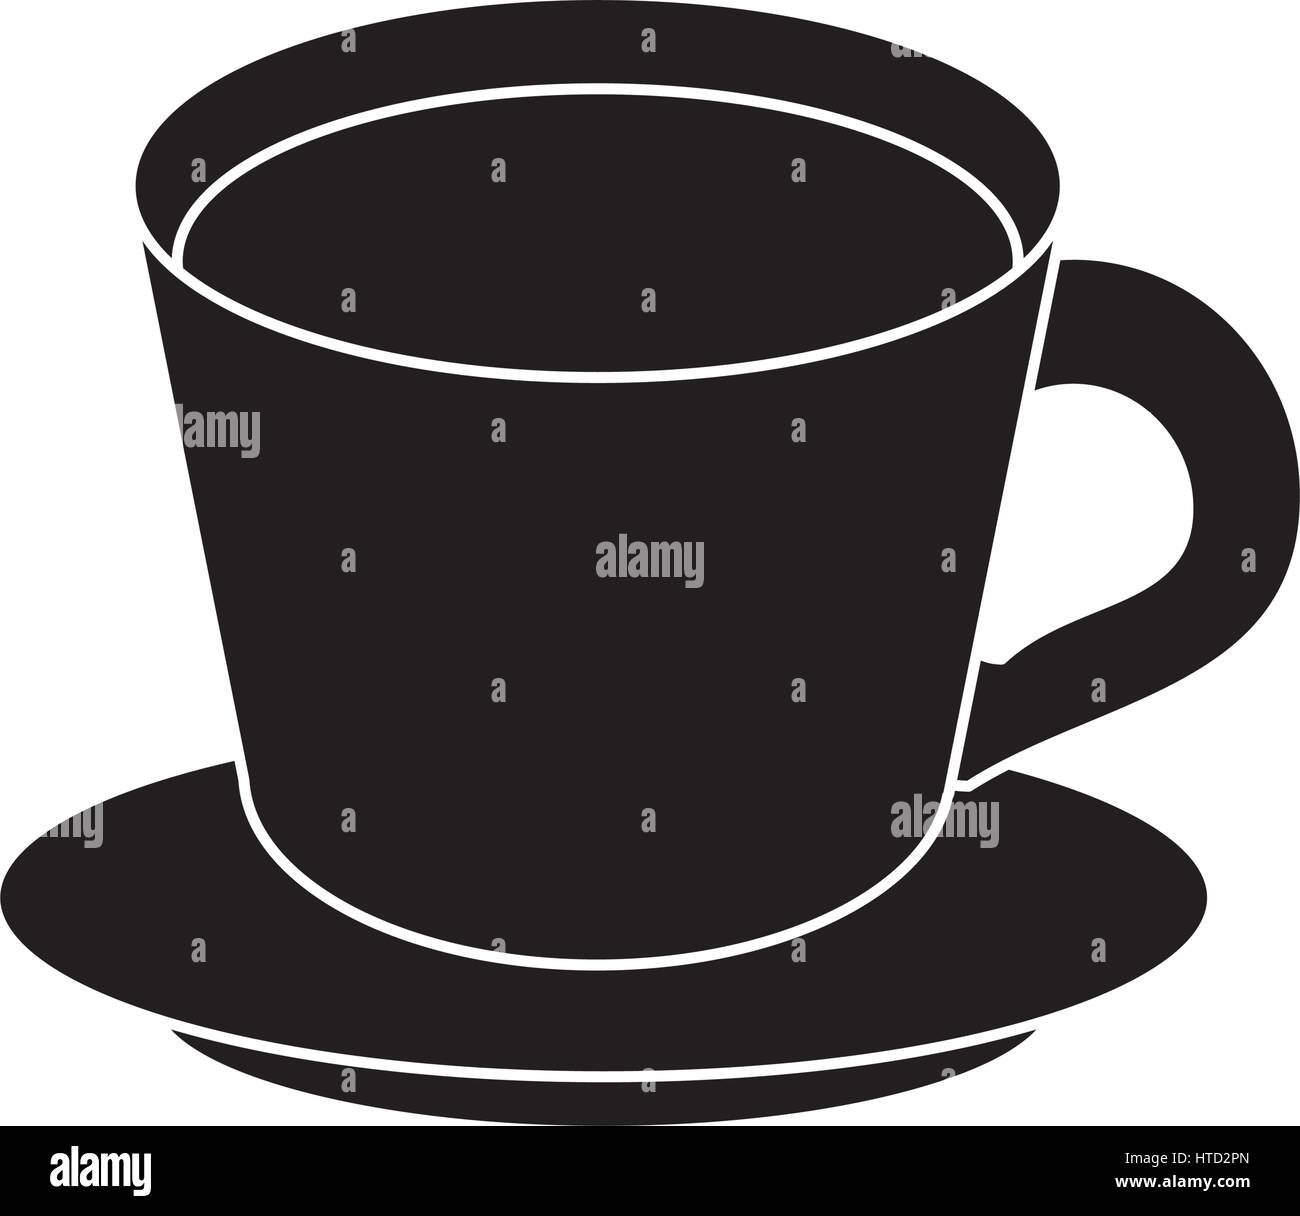 kaffee tasse teller piktogramm vektor abbildung bild 135511901 alamy. Black Bedroom Furniture Sets. Home Design Ideas